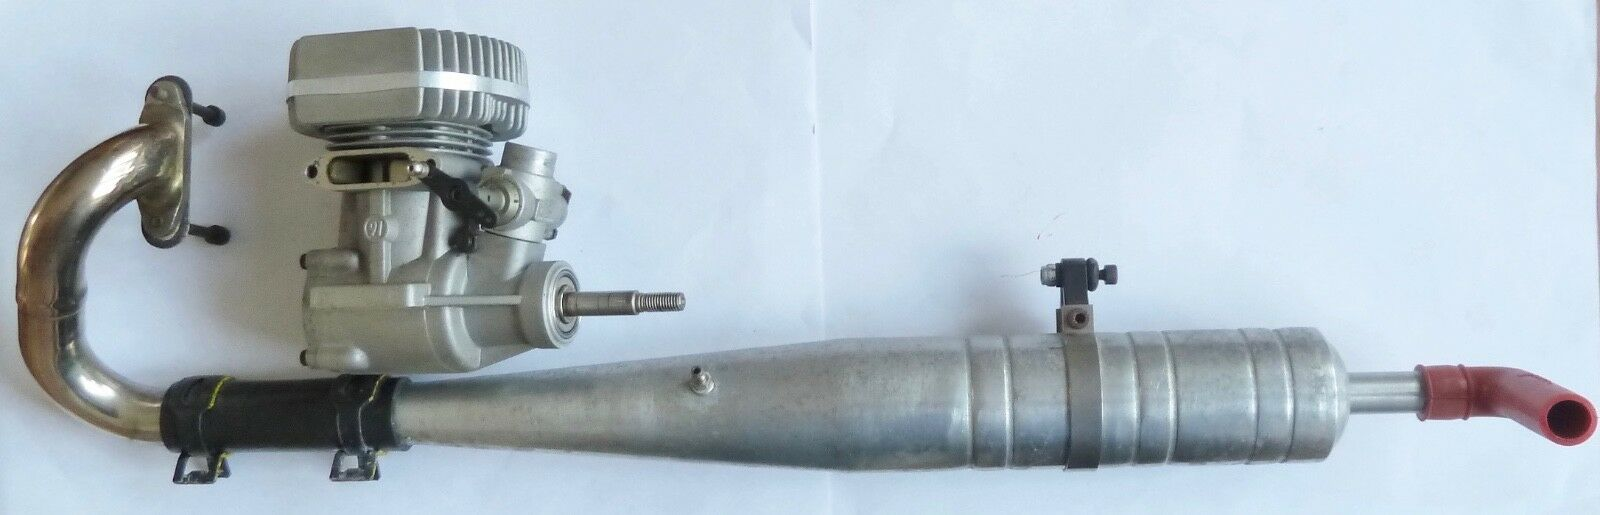 OS MAX 91 RC Helicopter Nitro Engine Exhaust Pipe + Silencer